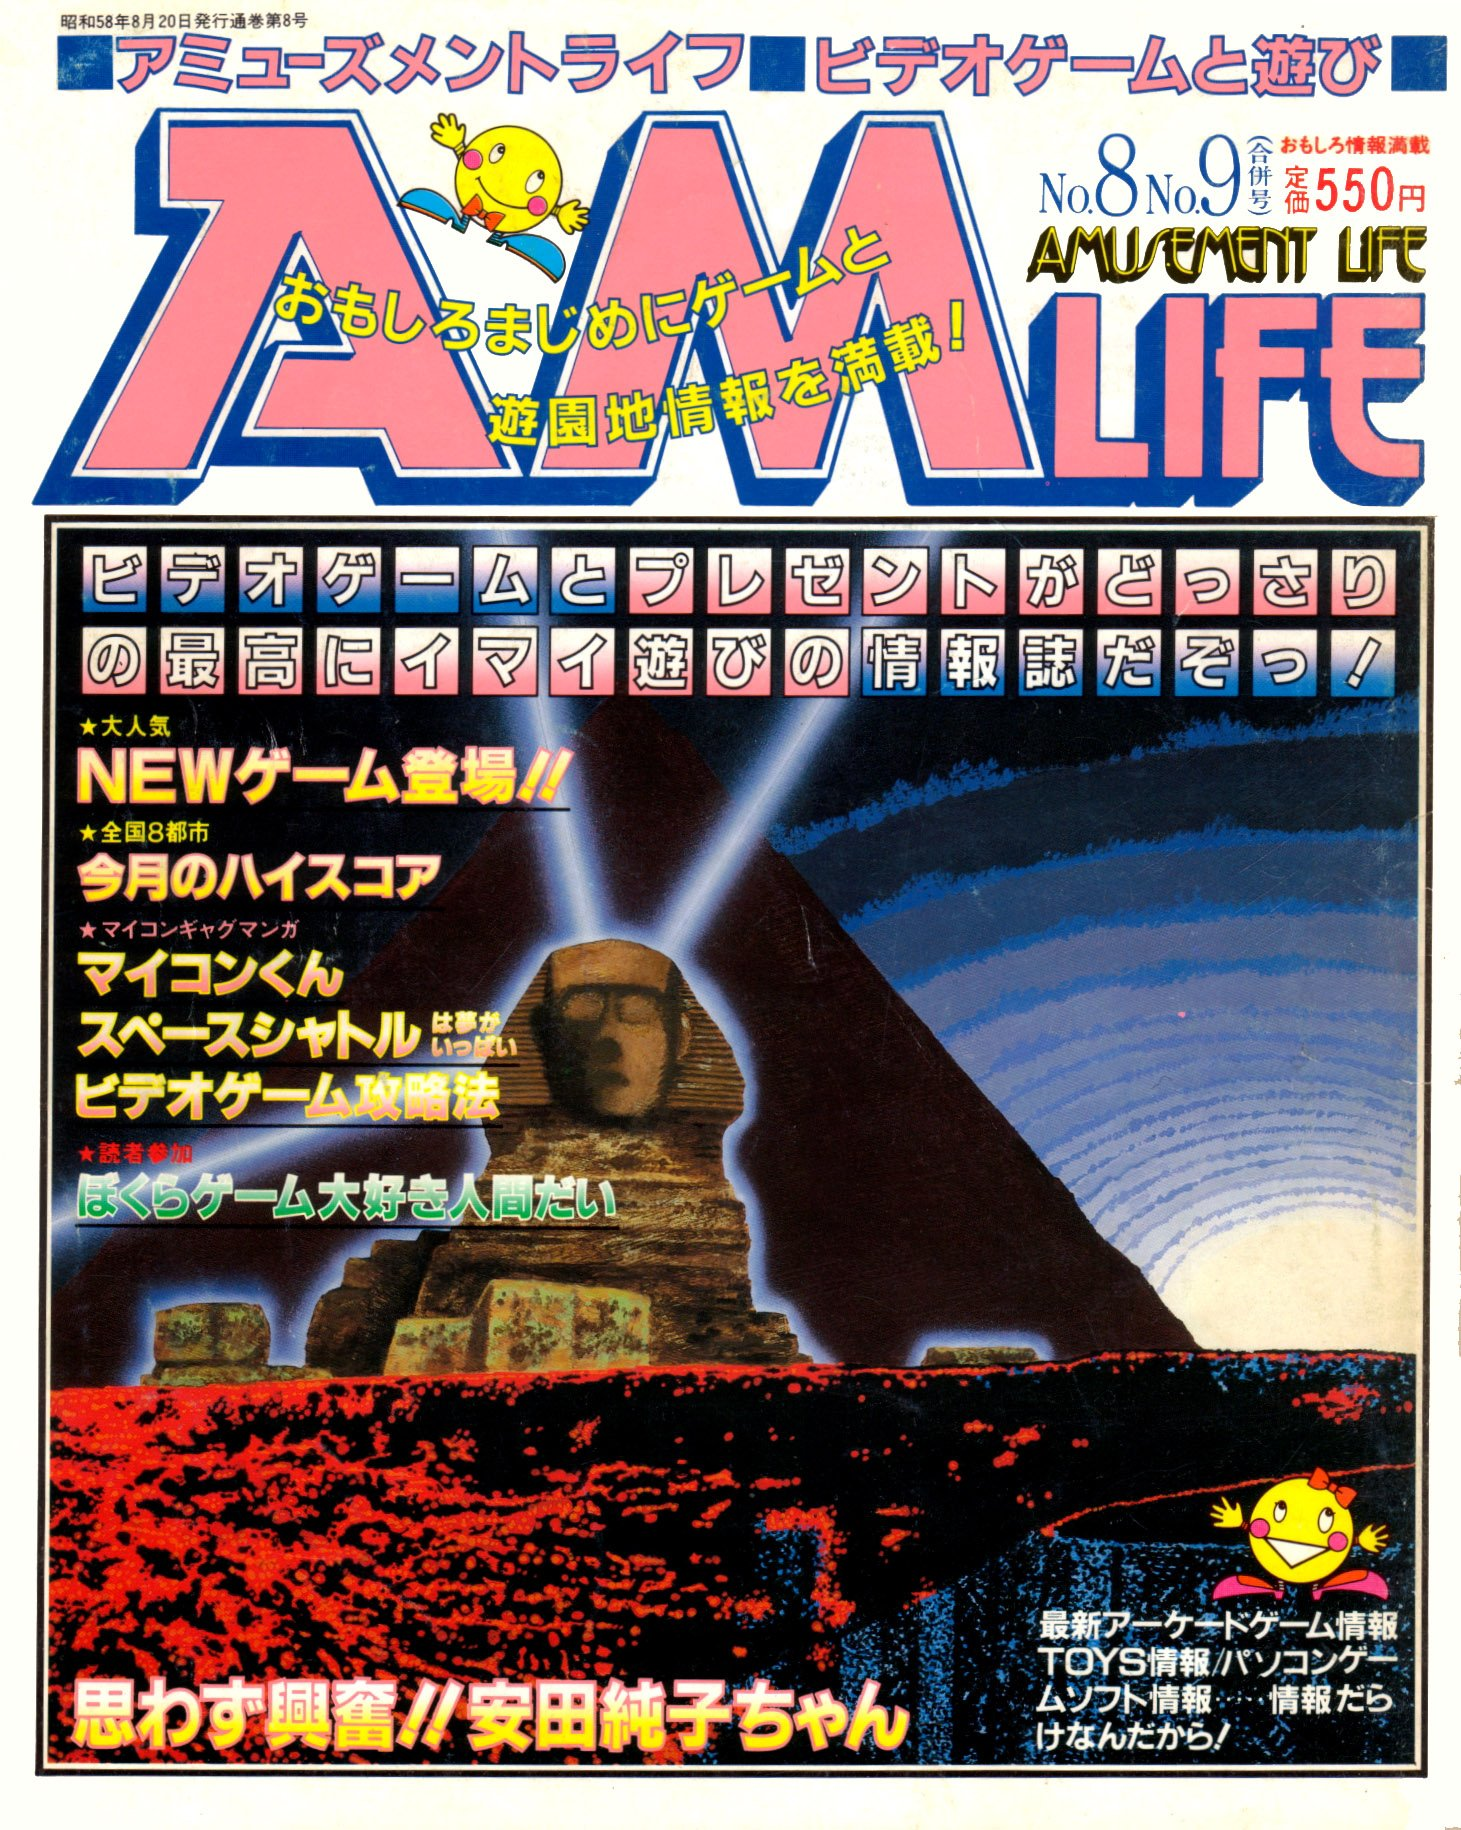 Amusement Life Issue 08-09 (August 1983)